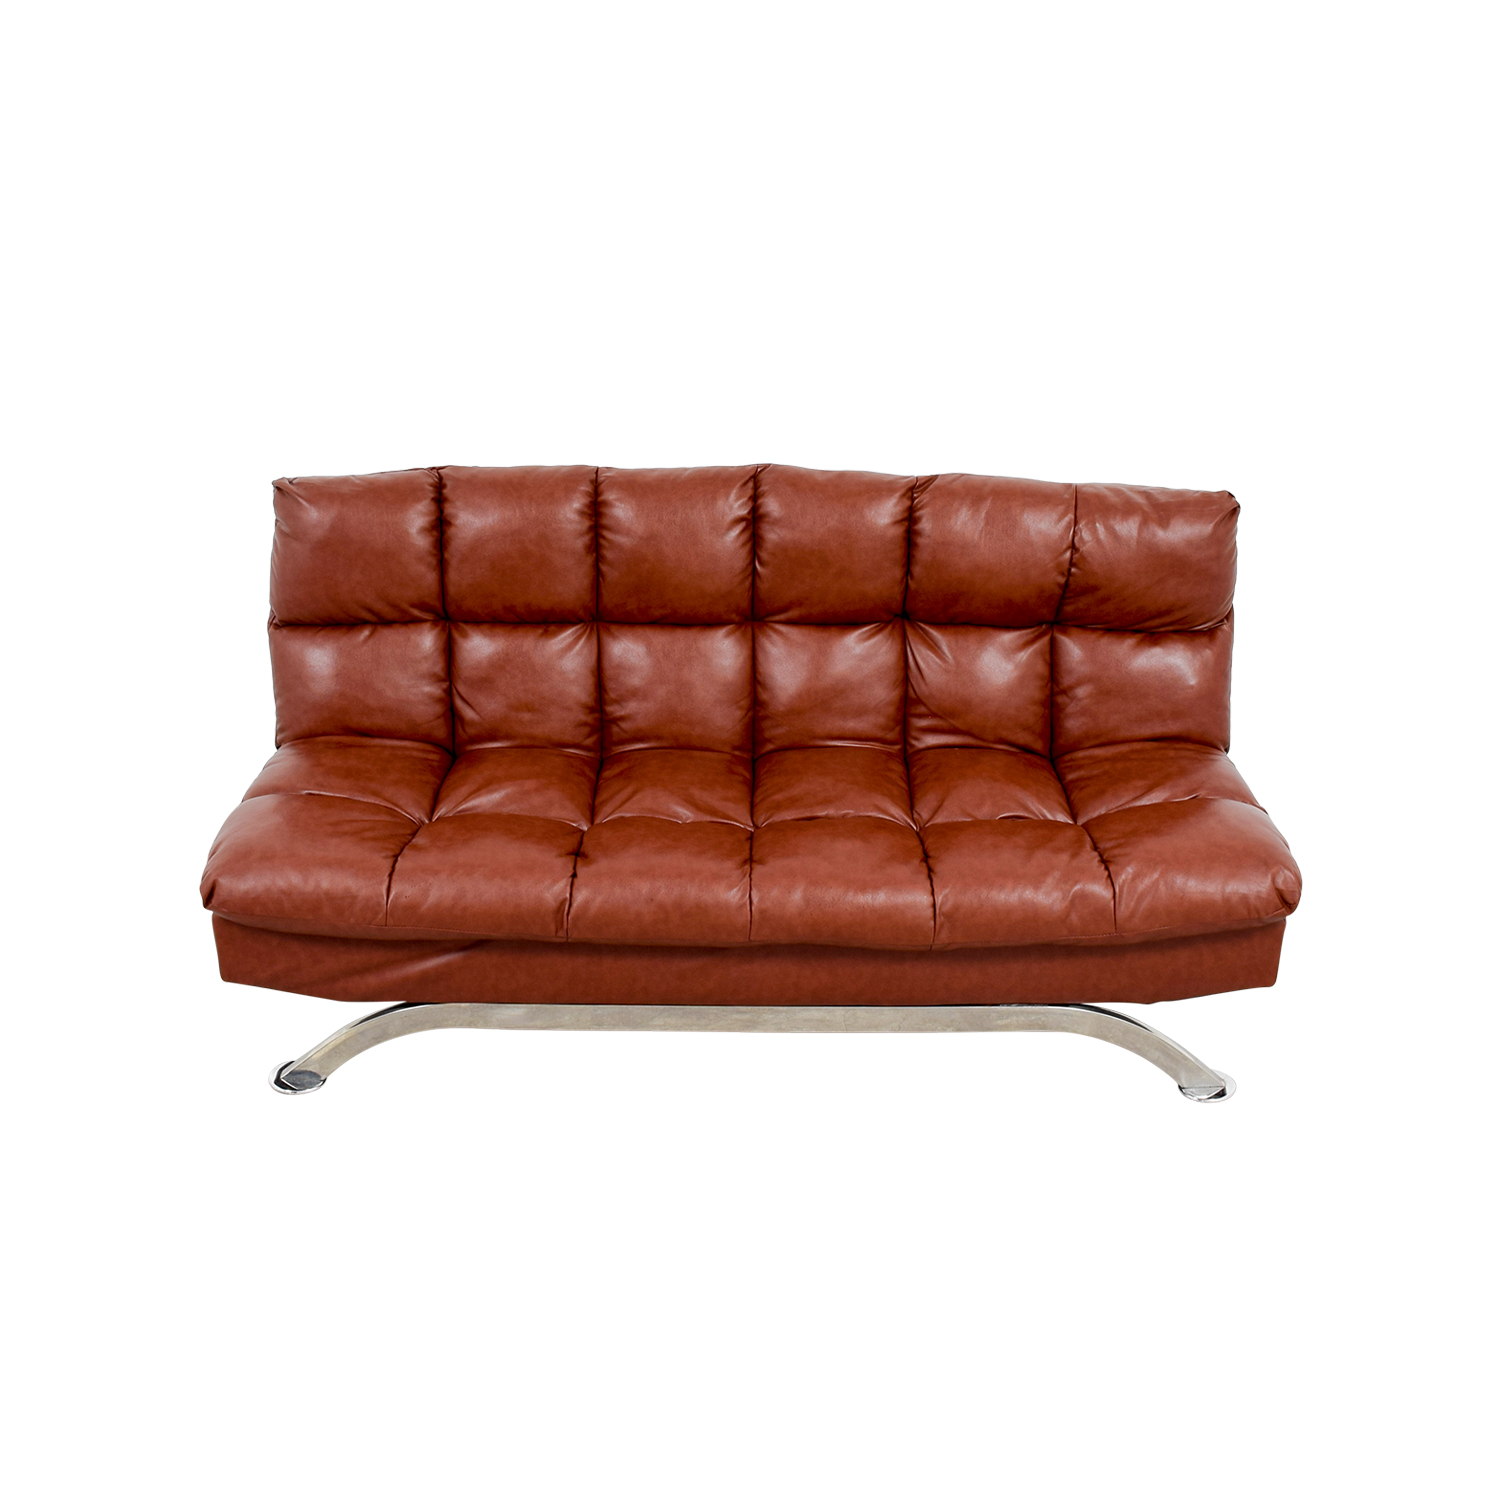 Groovy 62 Off Wayfair Wayfair Brookeville Brown Leather Sleeper Futon Sofas Andrewgaddart Wooden Chair Designs For Living Room Andrewgaddartcom